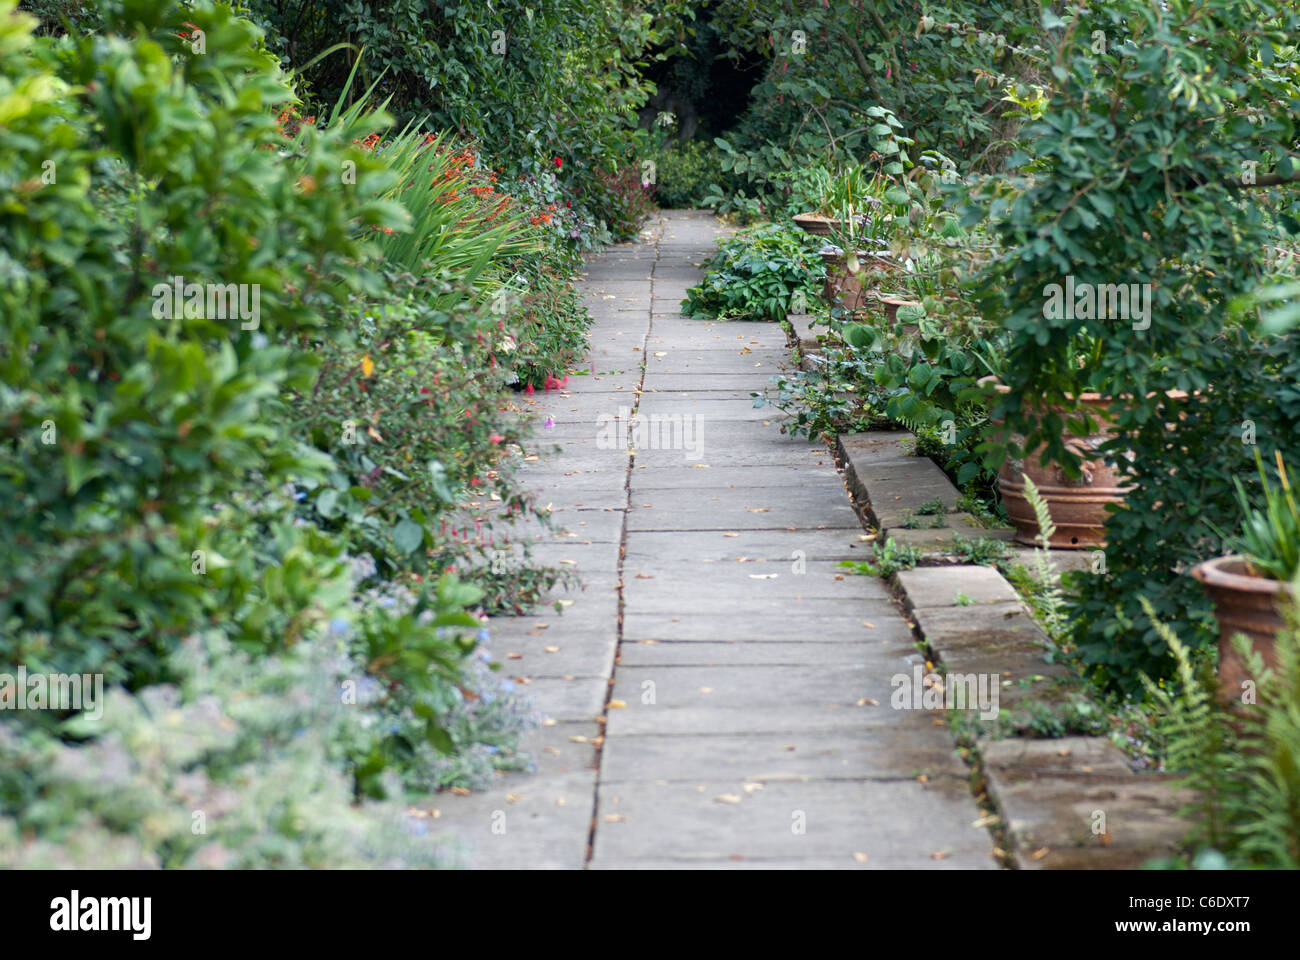 Low View Of An Empty Stone Garden Path With A Variety Of Plants Either Side  Growing